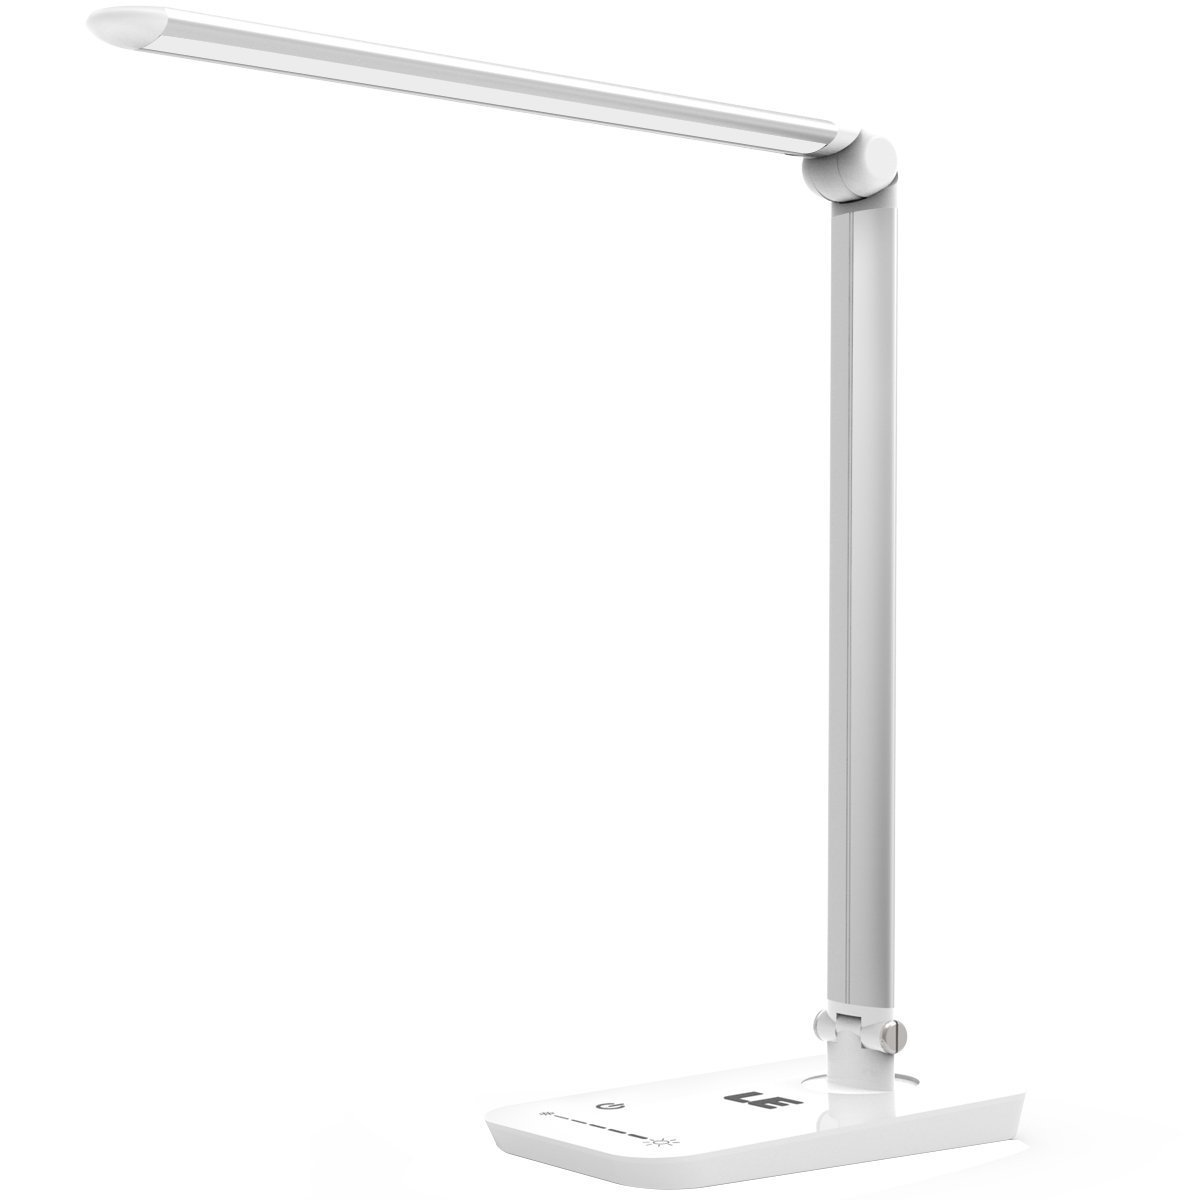 LE LED Desk Lamp, 8W Table Lamps, 7-Level Brightness Dimmable, Eye-care Touch Sensitive Control Foldable Bedroom Reading Lights [Energy Class A+] Lighting EVER